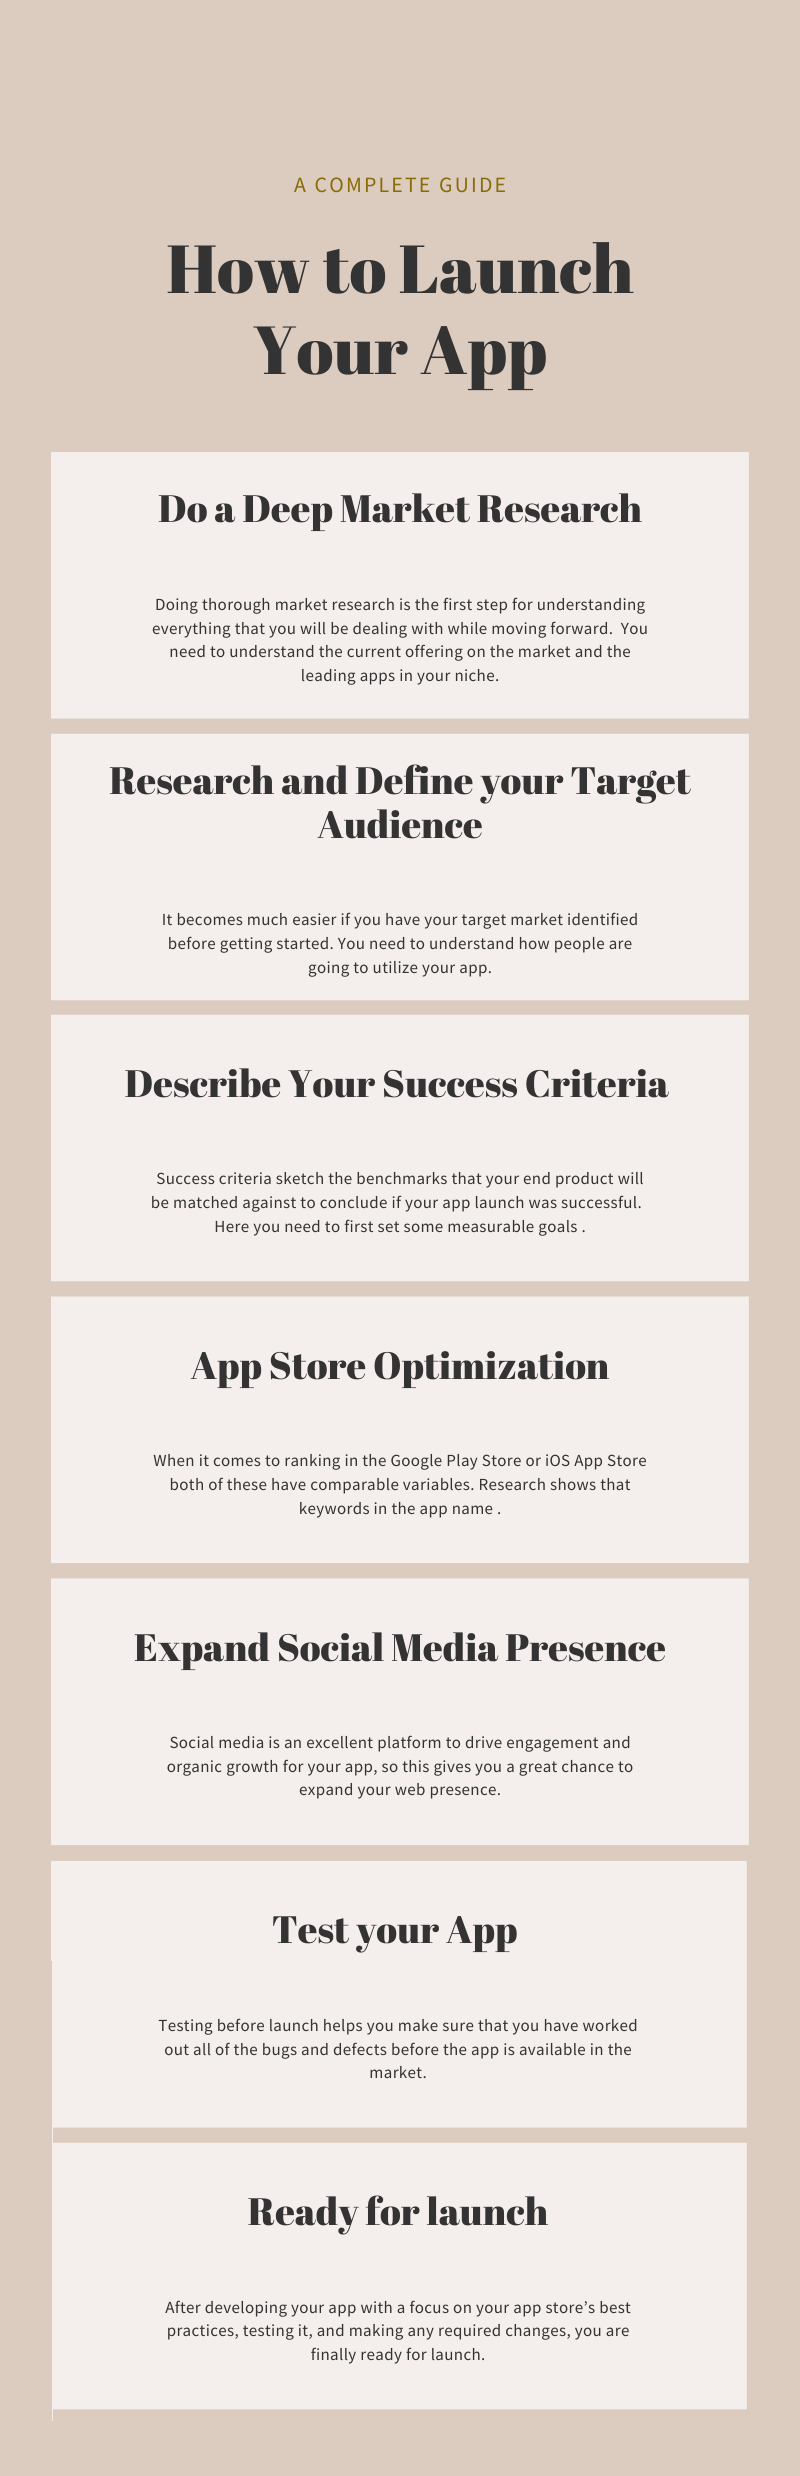 launch your mobile app infographic